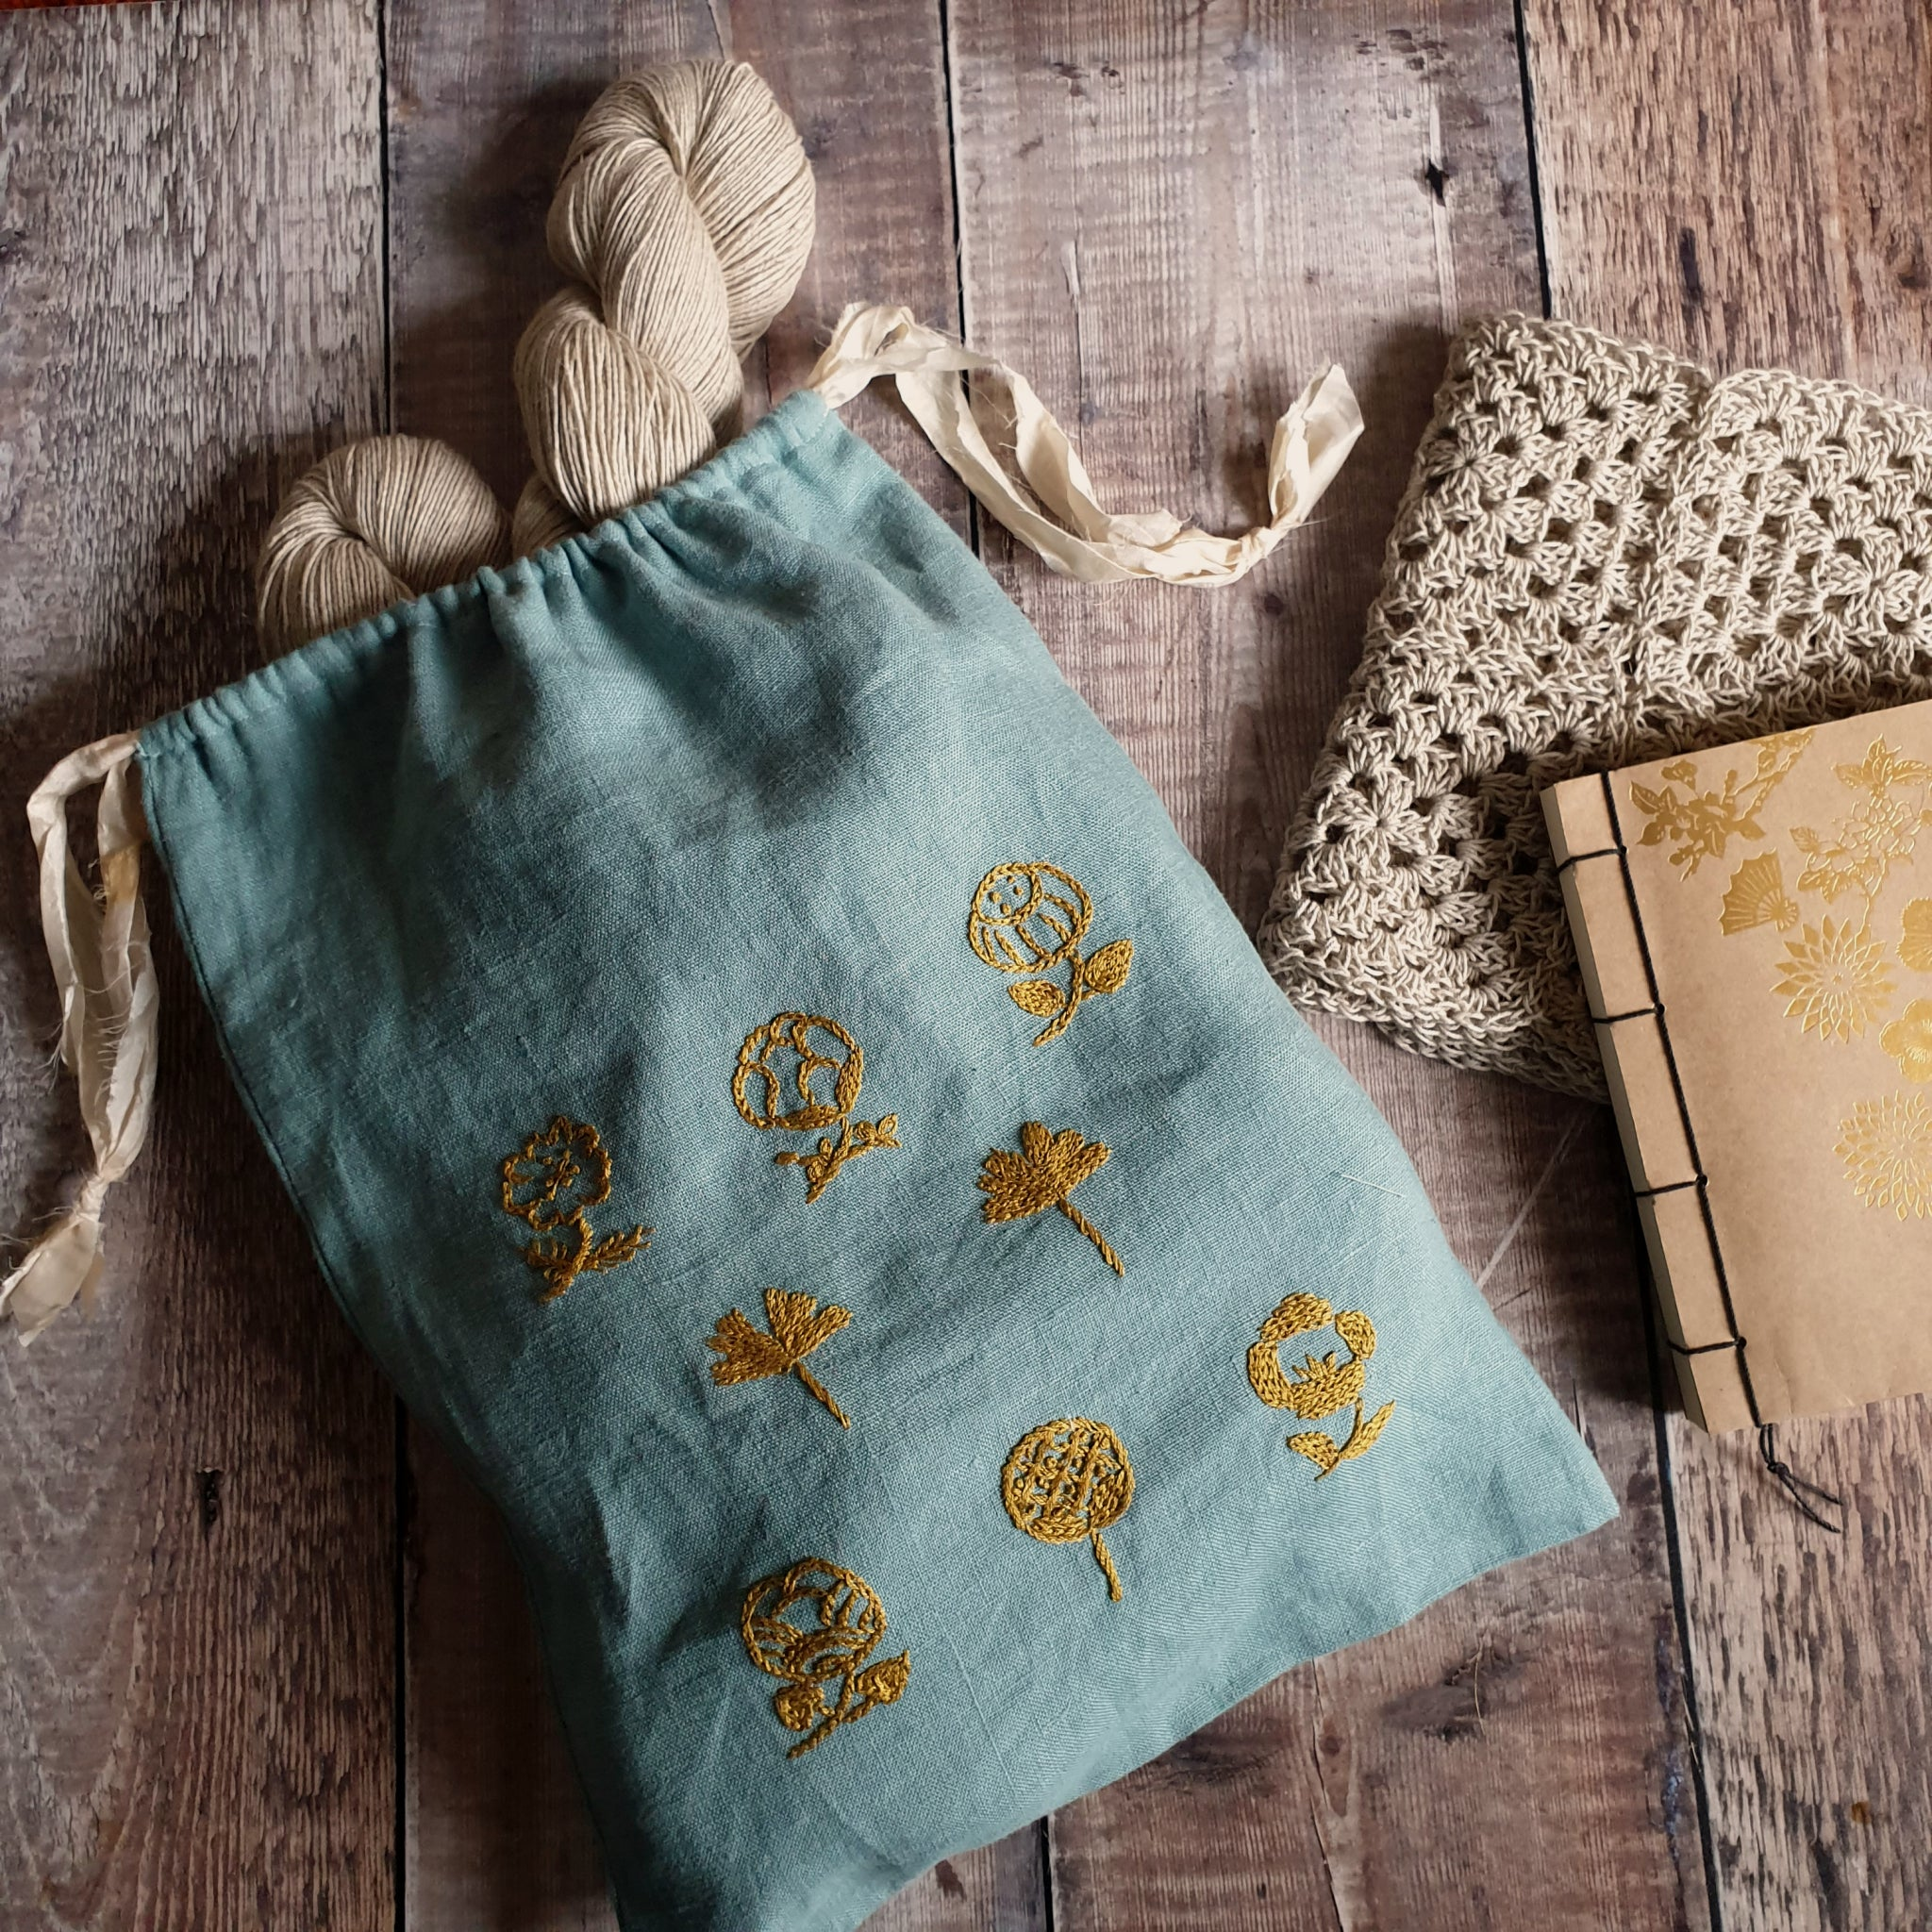 Hand Embroidered Linen Drawstring Bag - Gold Blooms (In Stock, Ready to Ship)